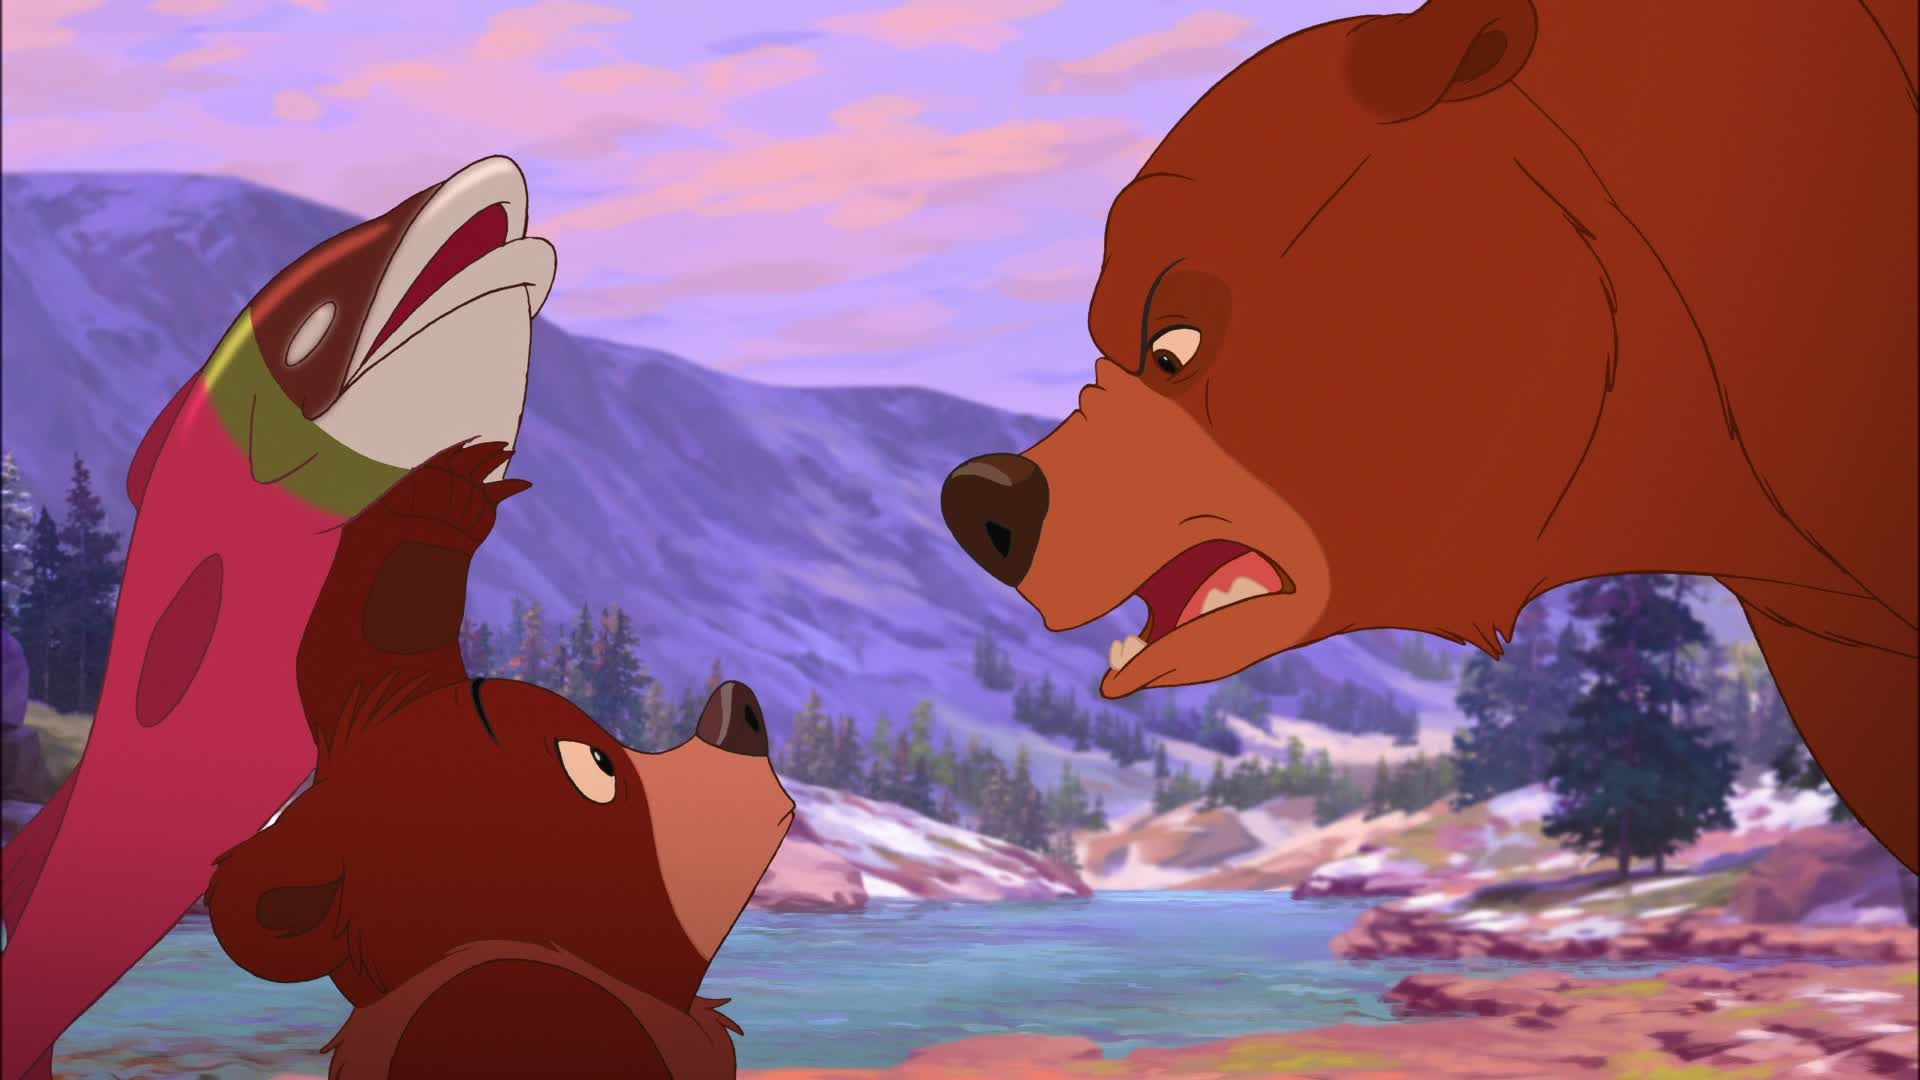 100867.jpg 1,920×1,080 pixels | Brother bear, Anime, Disney